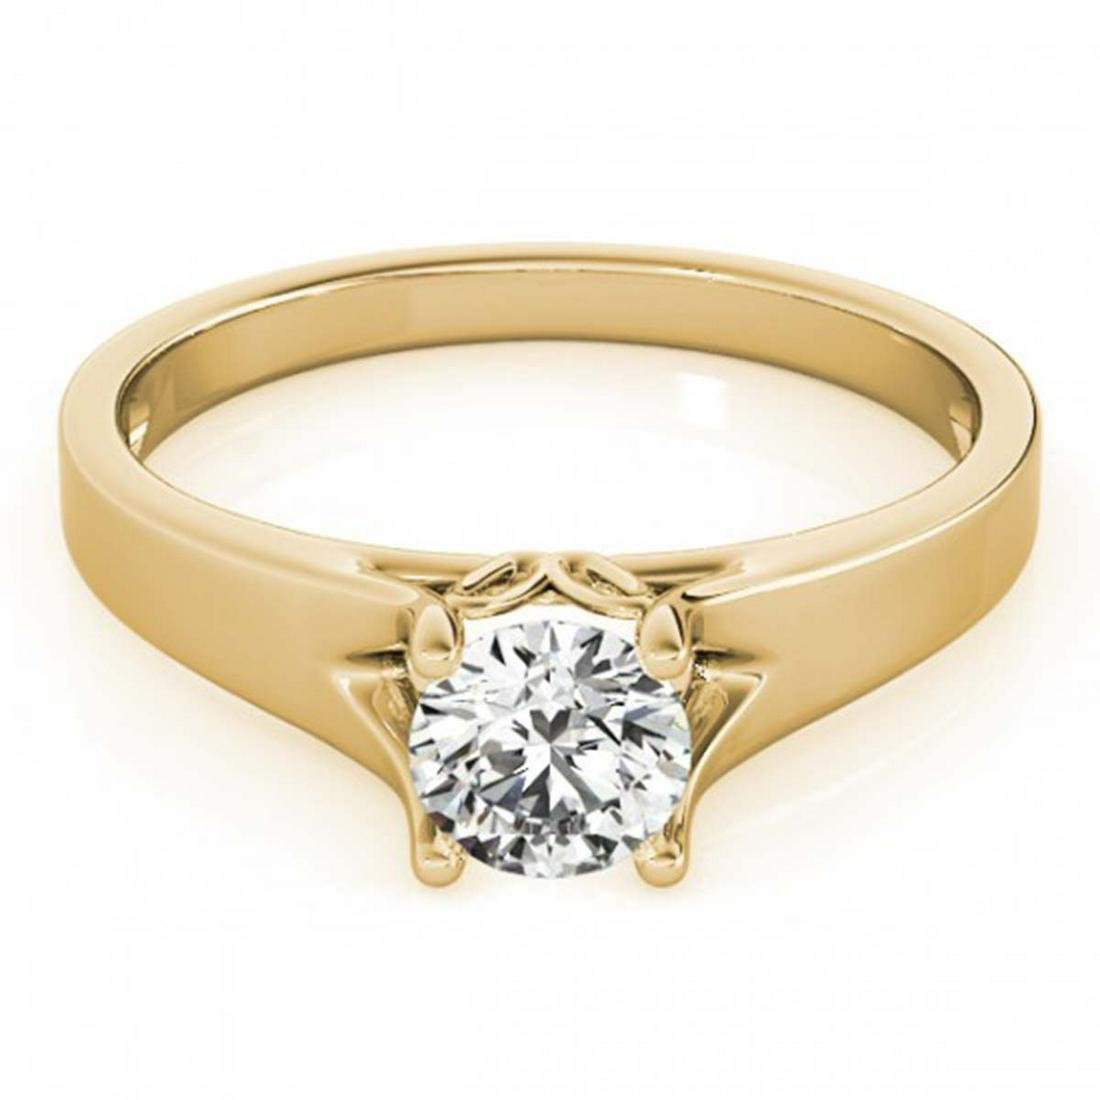 1.50 ctw VS/SI Diamond Solitaire Ring 14K Yellow Gold -